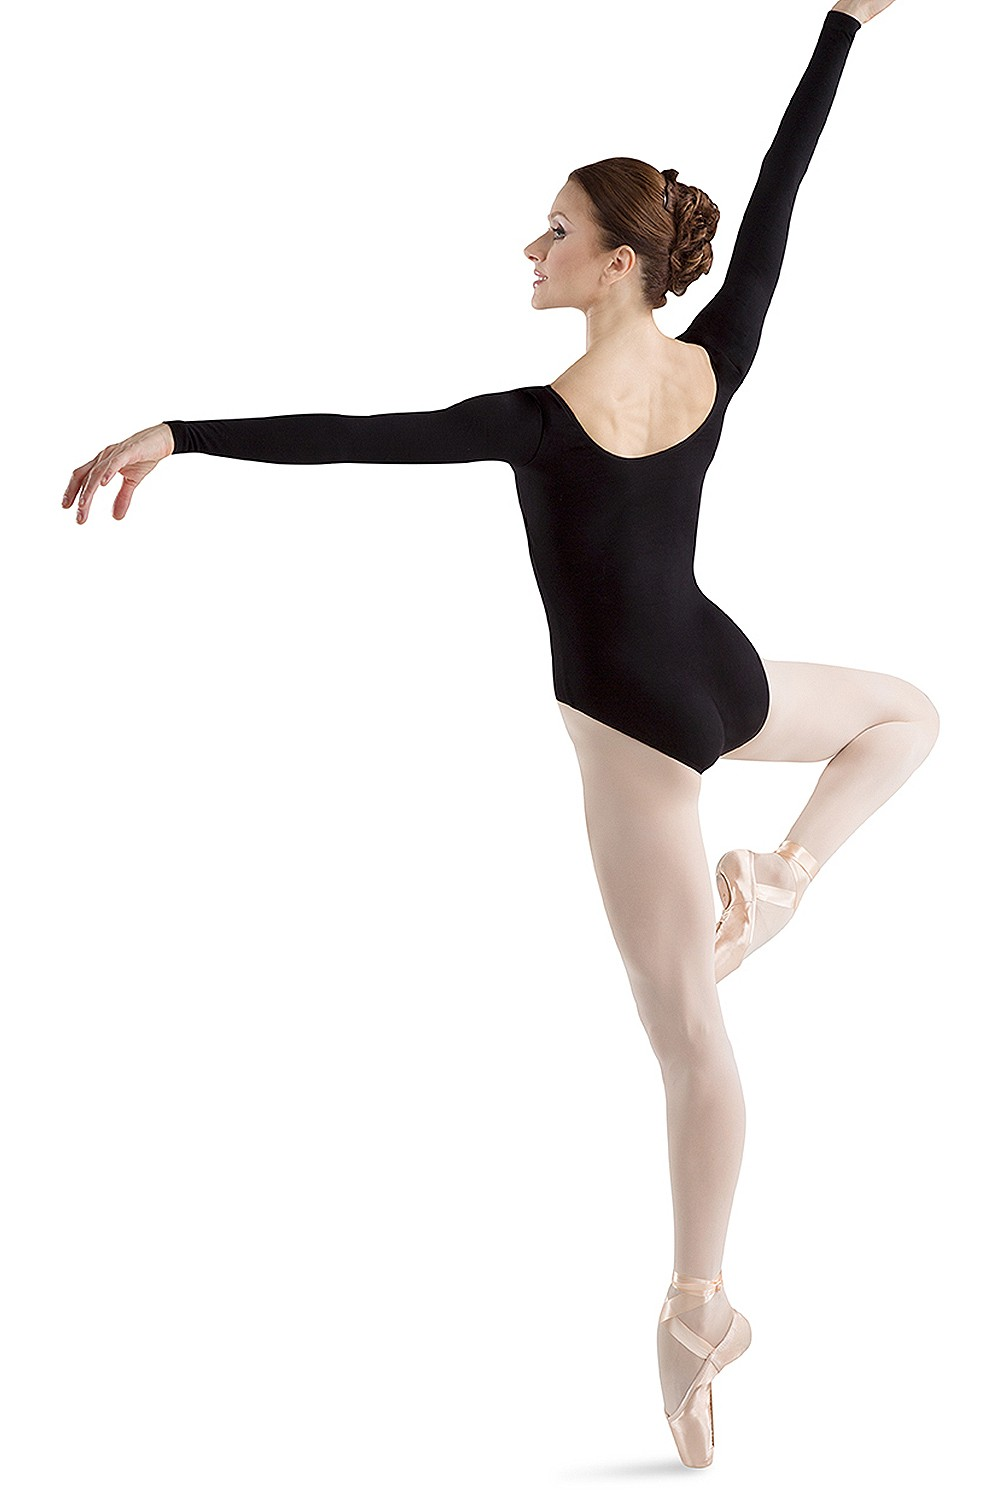 Premier - Tall Women's Dance Leotards